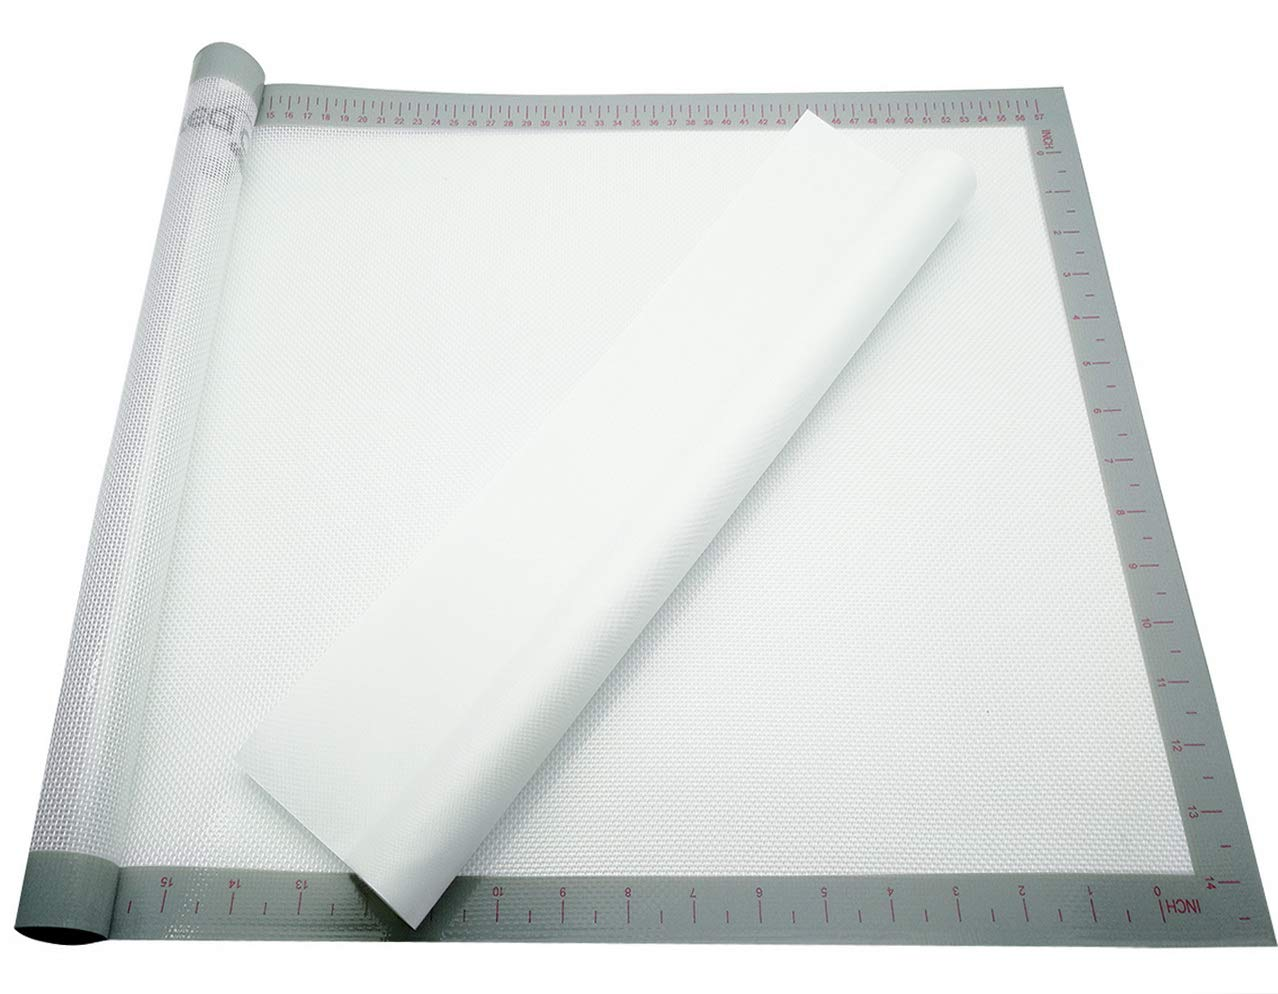 Silicone Mat for Applique and Crafts 24.4x16.5 Premium Silicone Sheet,Non-Stick,Non-Slip,Reusable,and Durable,Including Free Transparent White Applique Pressing Sheet